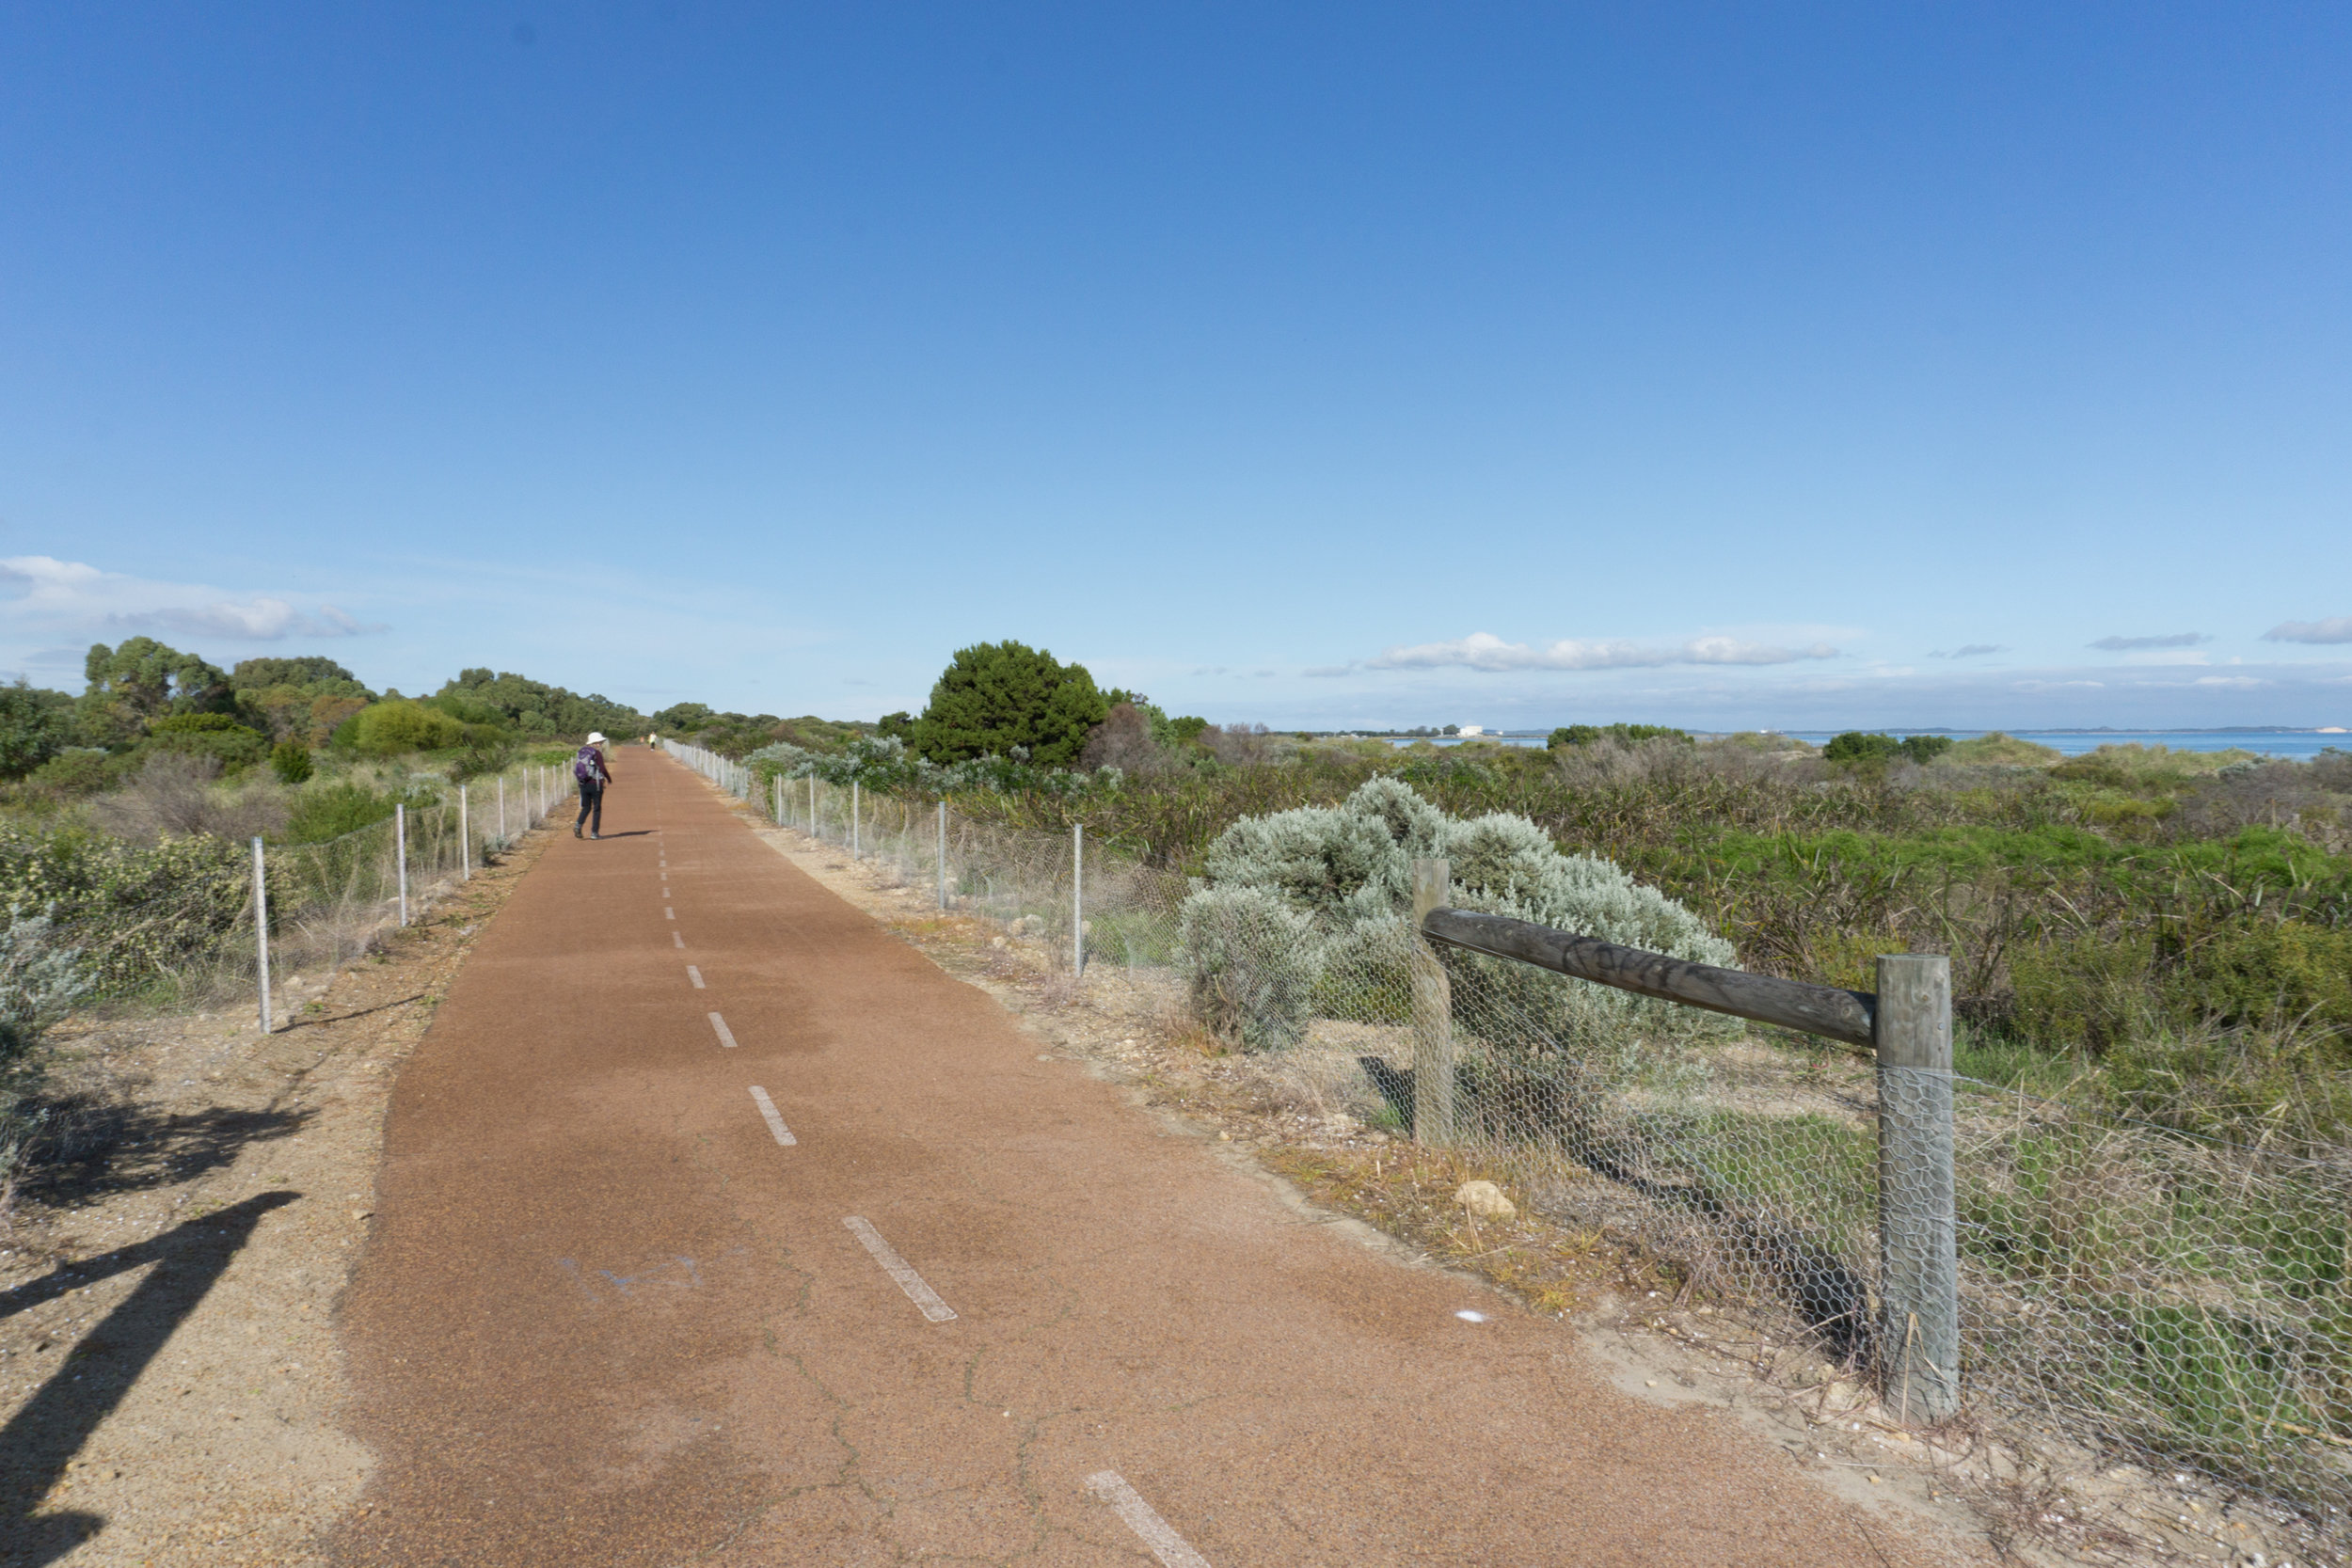 Fig 17: Path in the coastal foreshore between Coogee and Woodman Point south of Perth